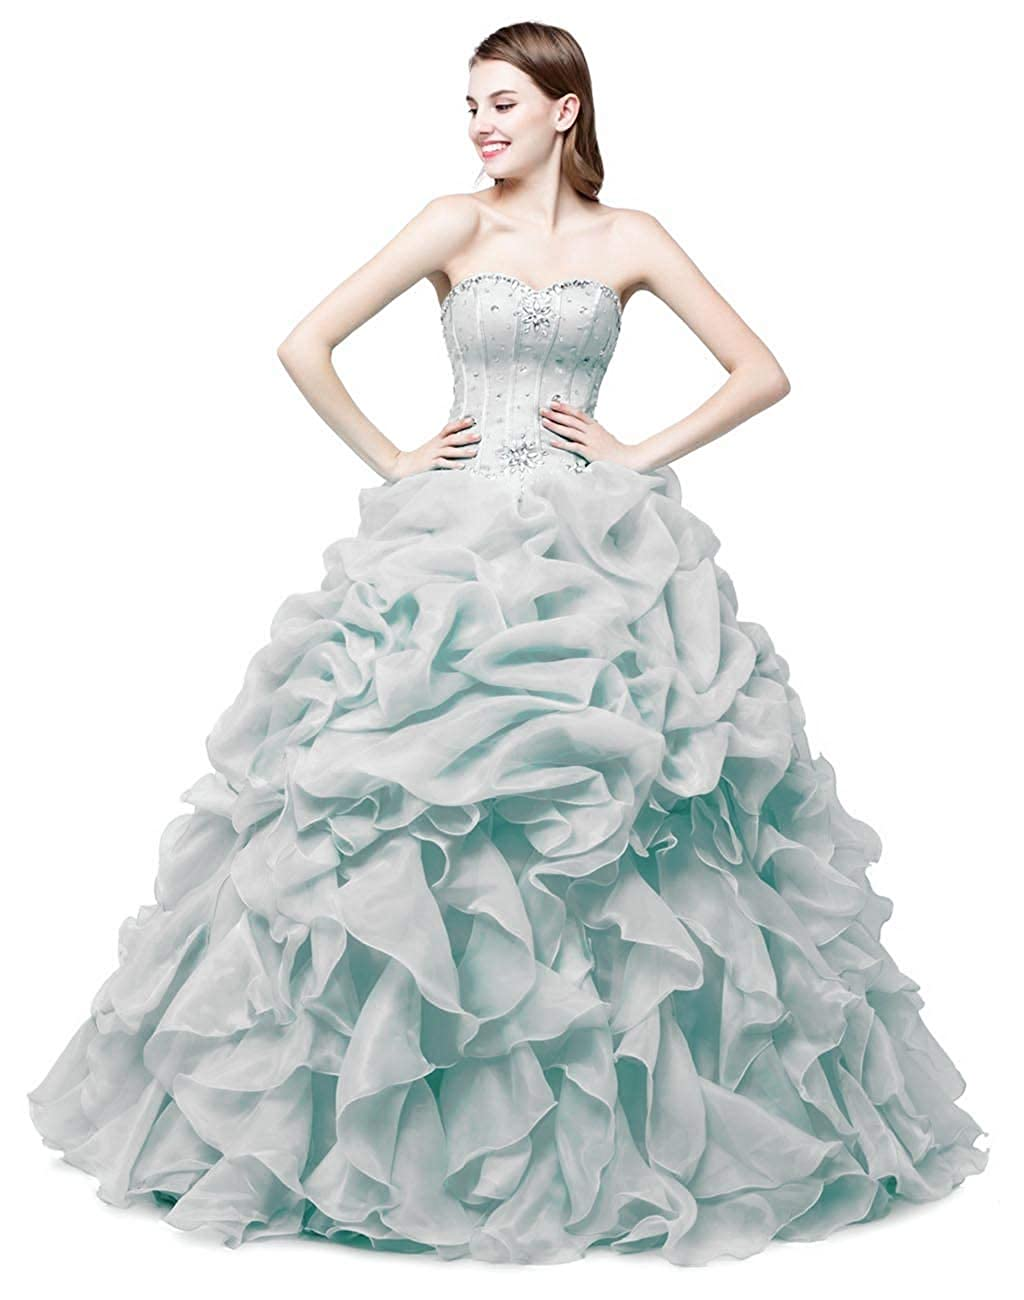 Silver Vantexi Women's Pleated Organza Formal Prom Dress Party Ball Gowns